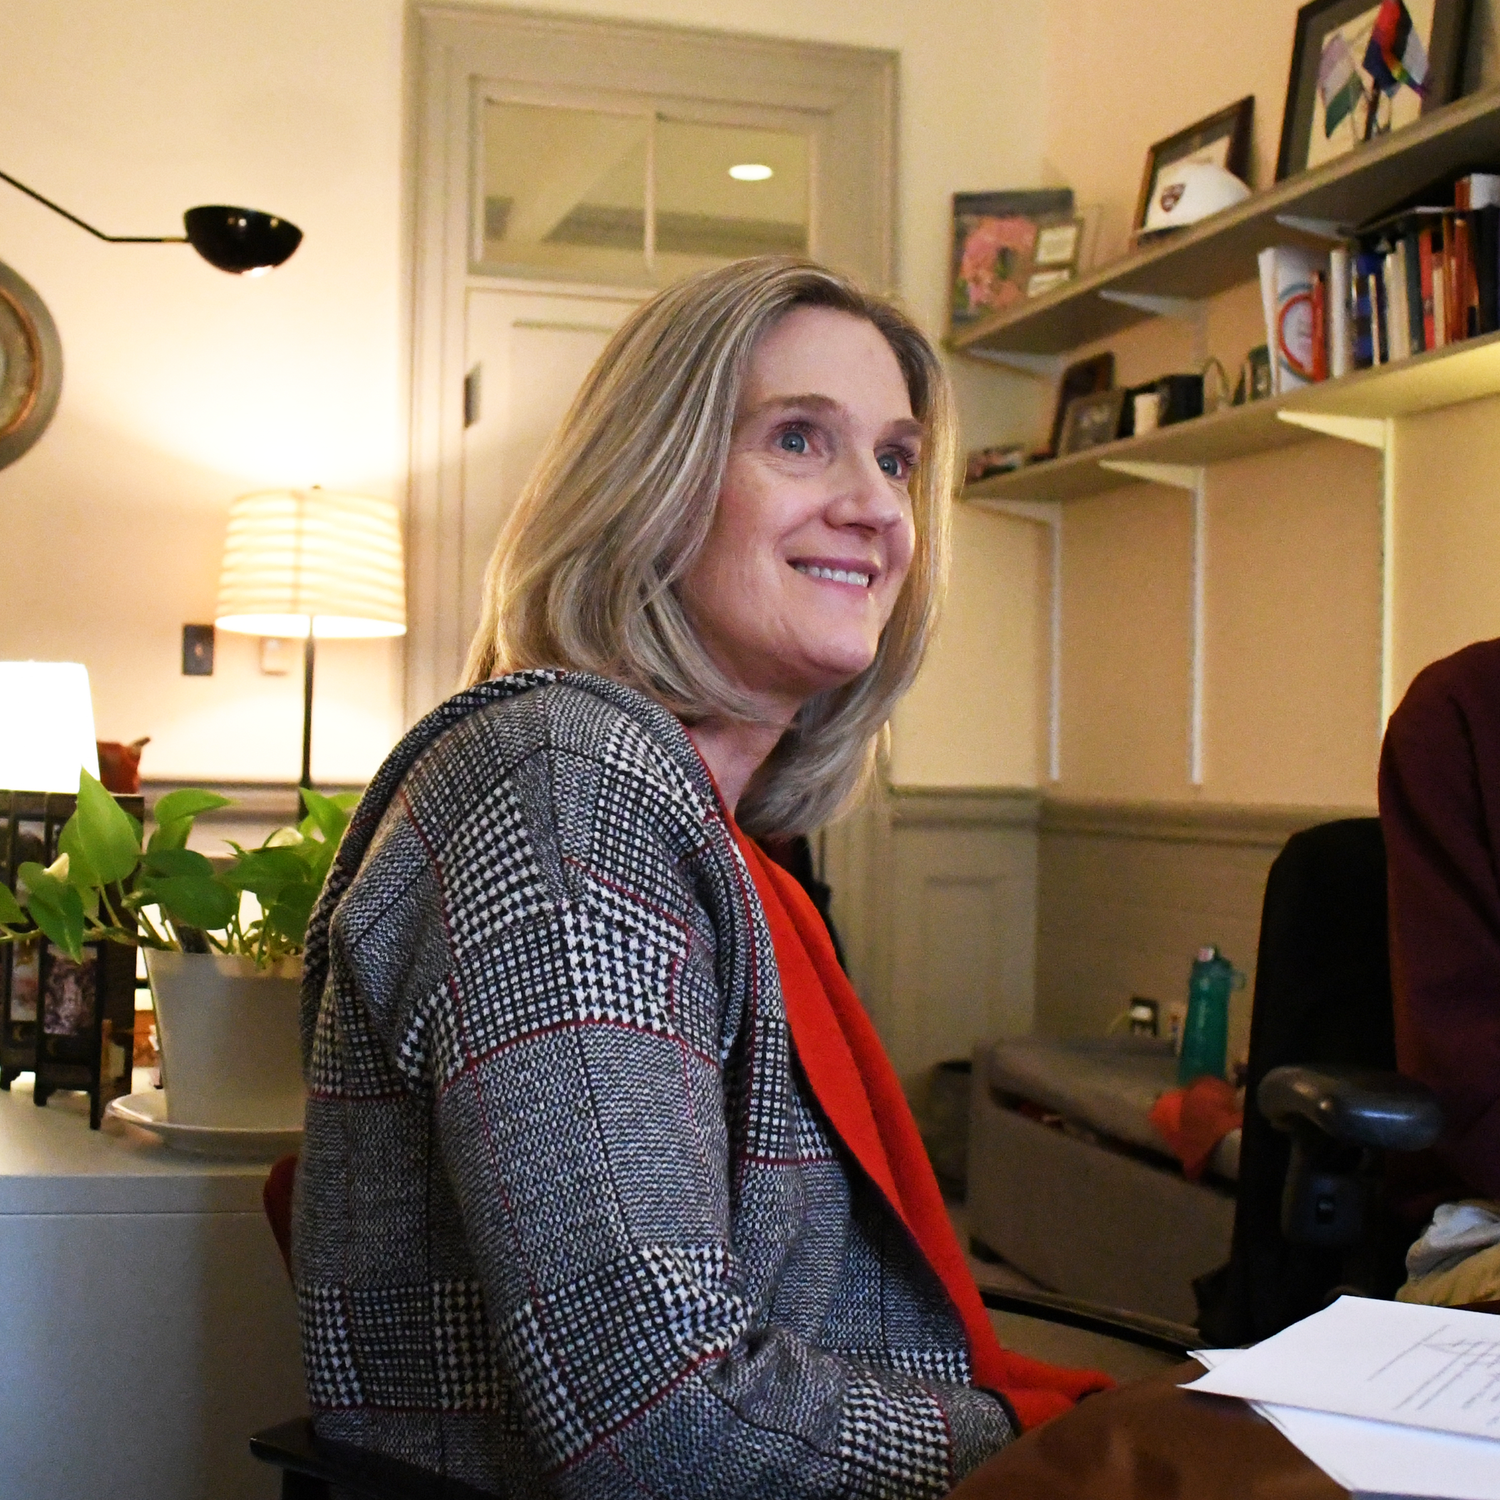 Dean of Students Katherine G. O'Dair, pictured here in a November 2019 interview, said Friday that the most common criticism she heard from students about the fall semester was a lack of communication about future developments, especially regarding the opening of common spaces.